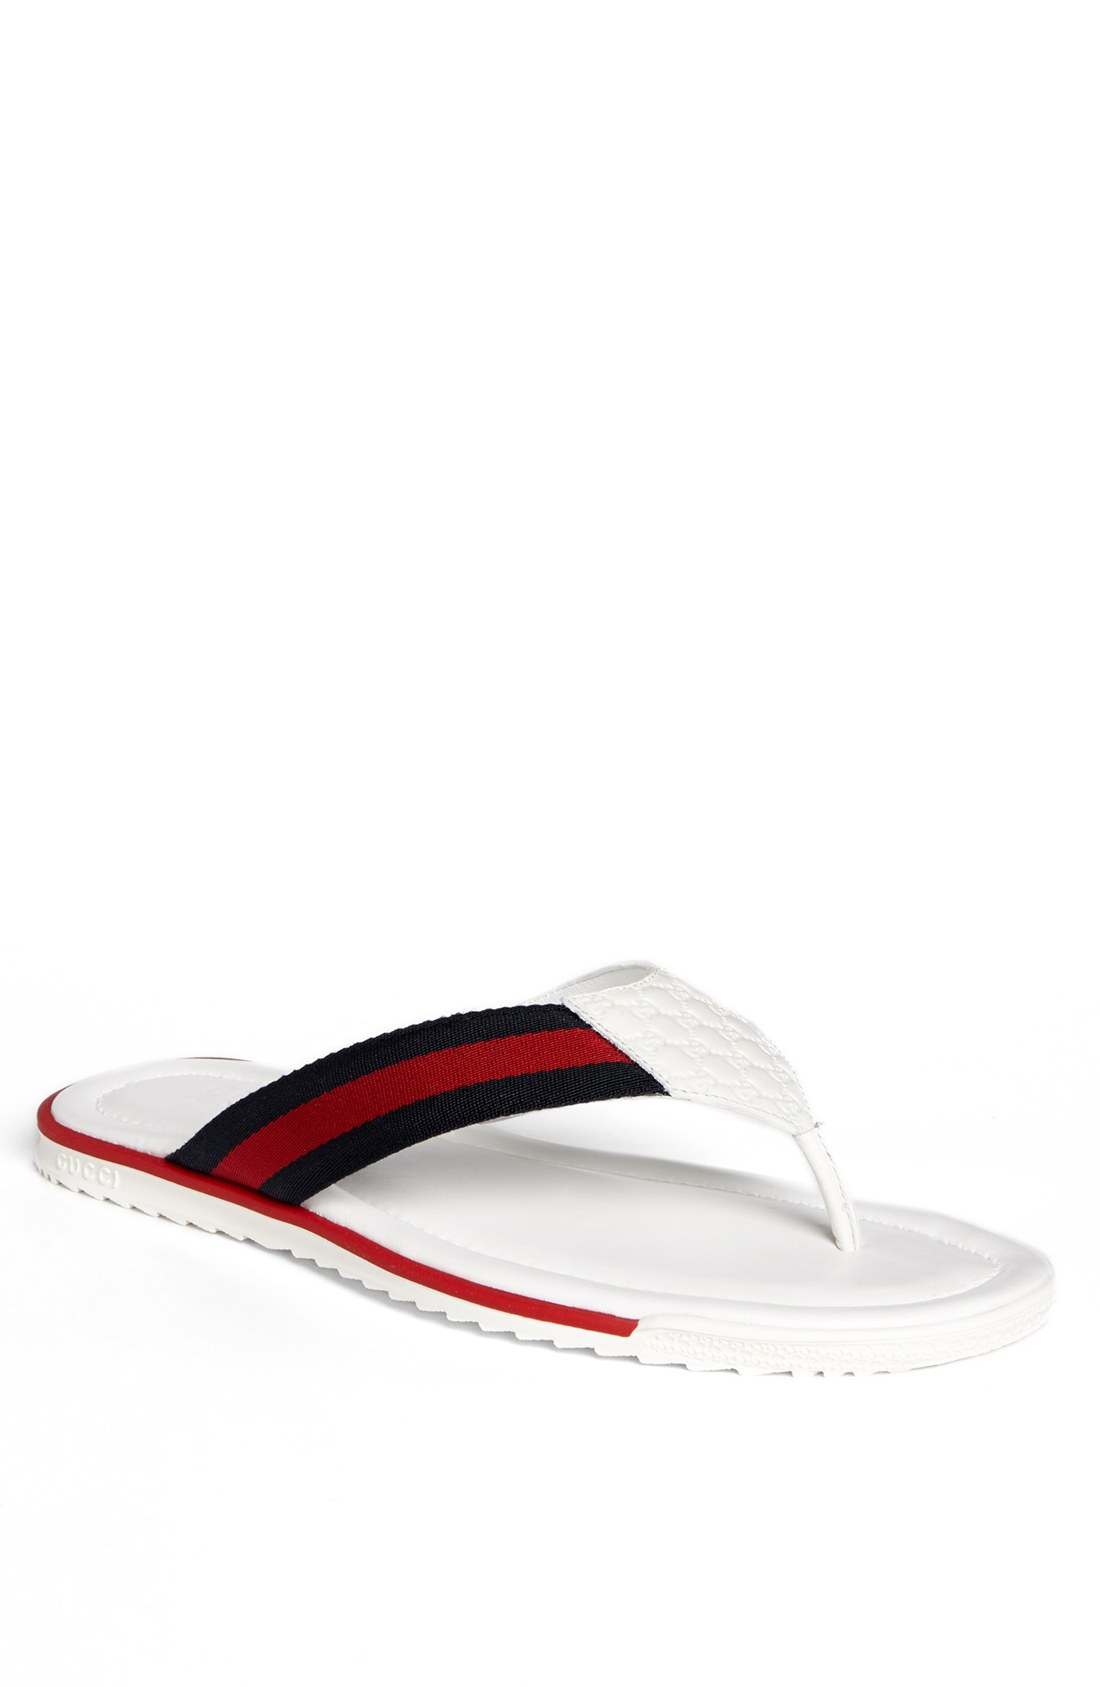 how to clean white gucci flip flops